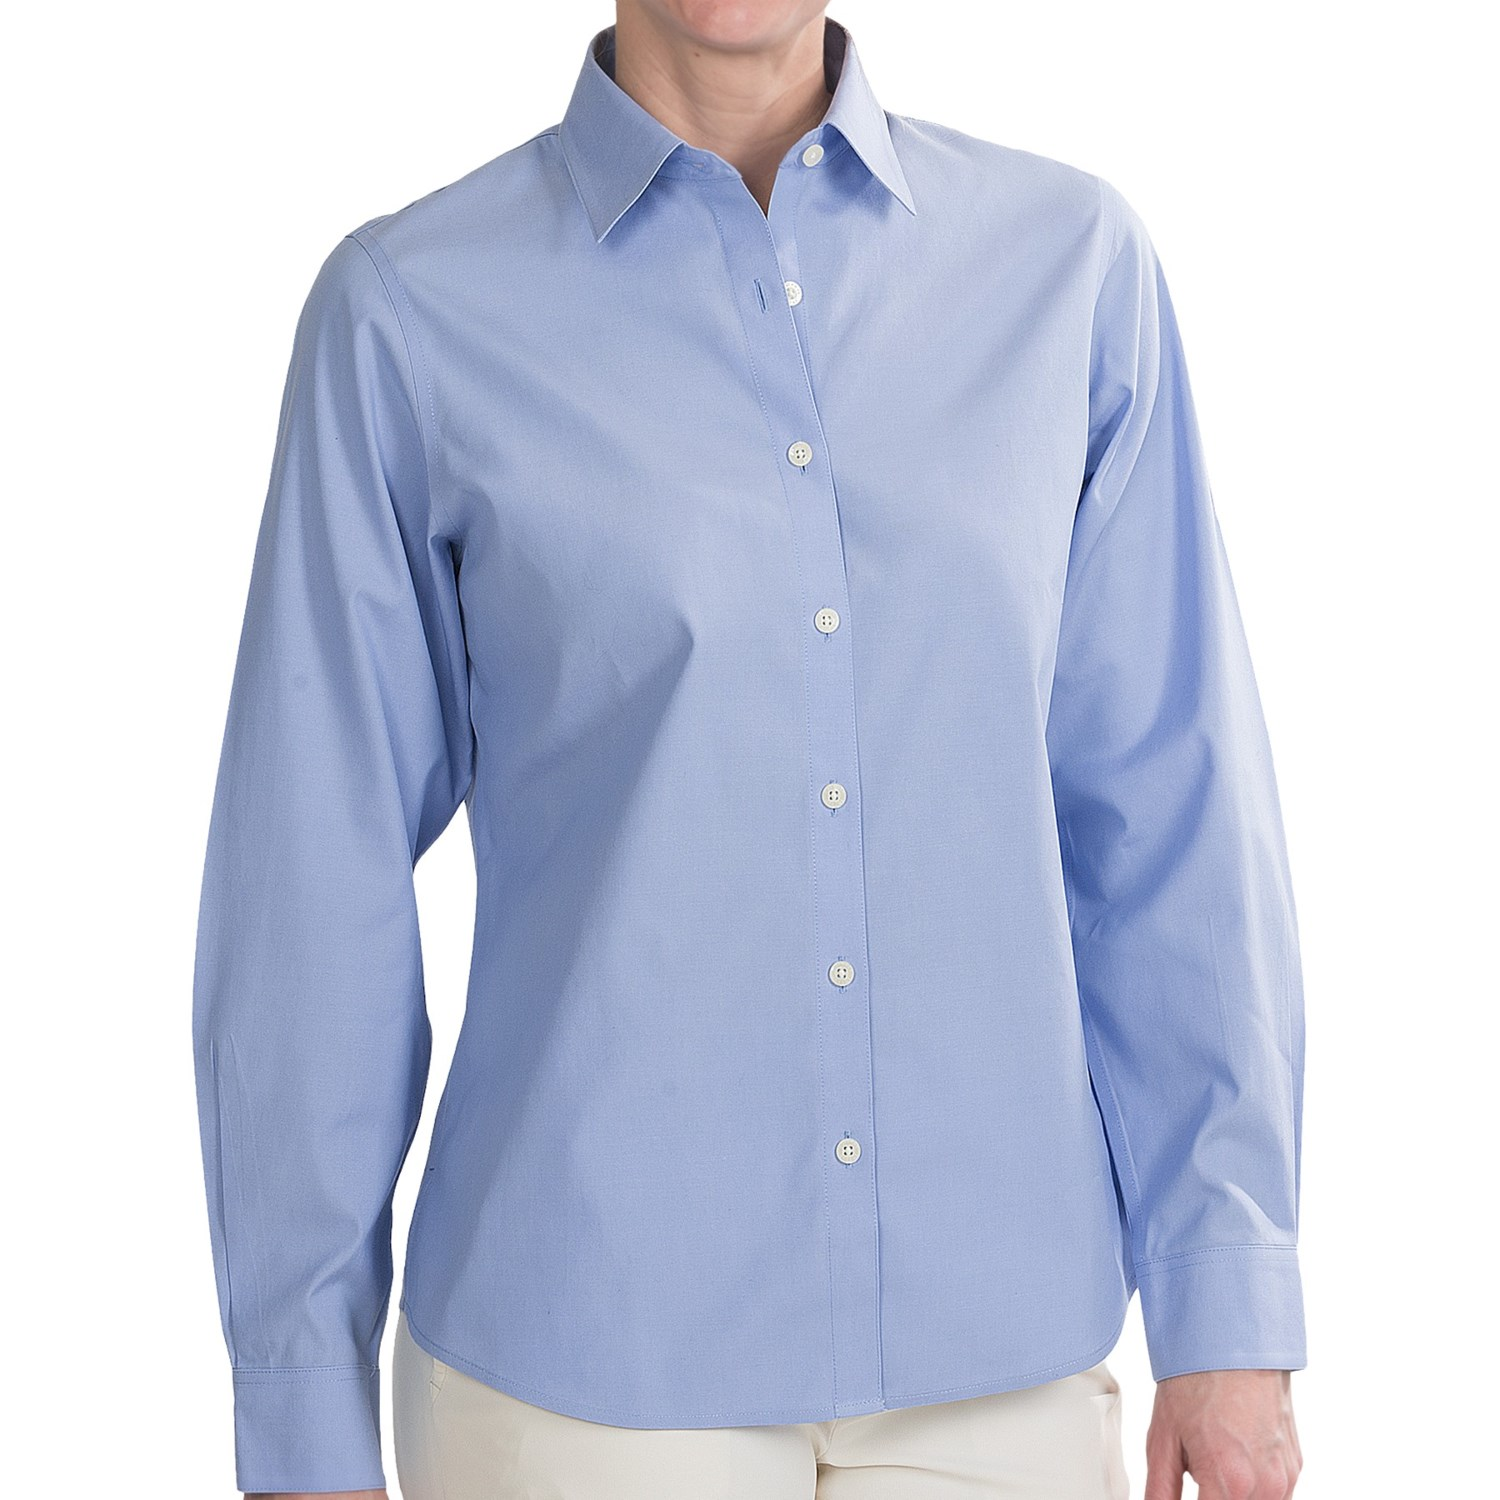 fairway greene wrinkle free dress shirt for women